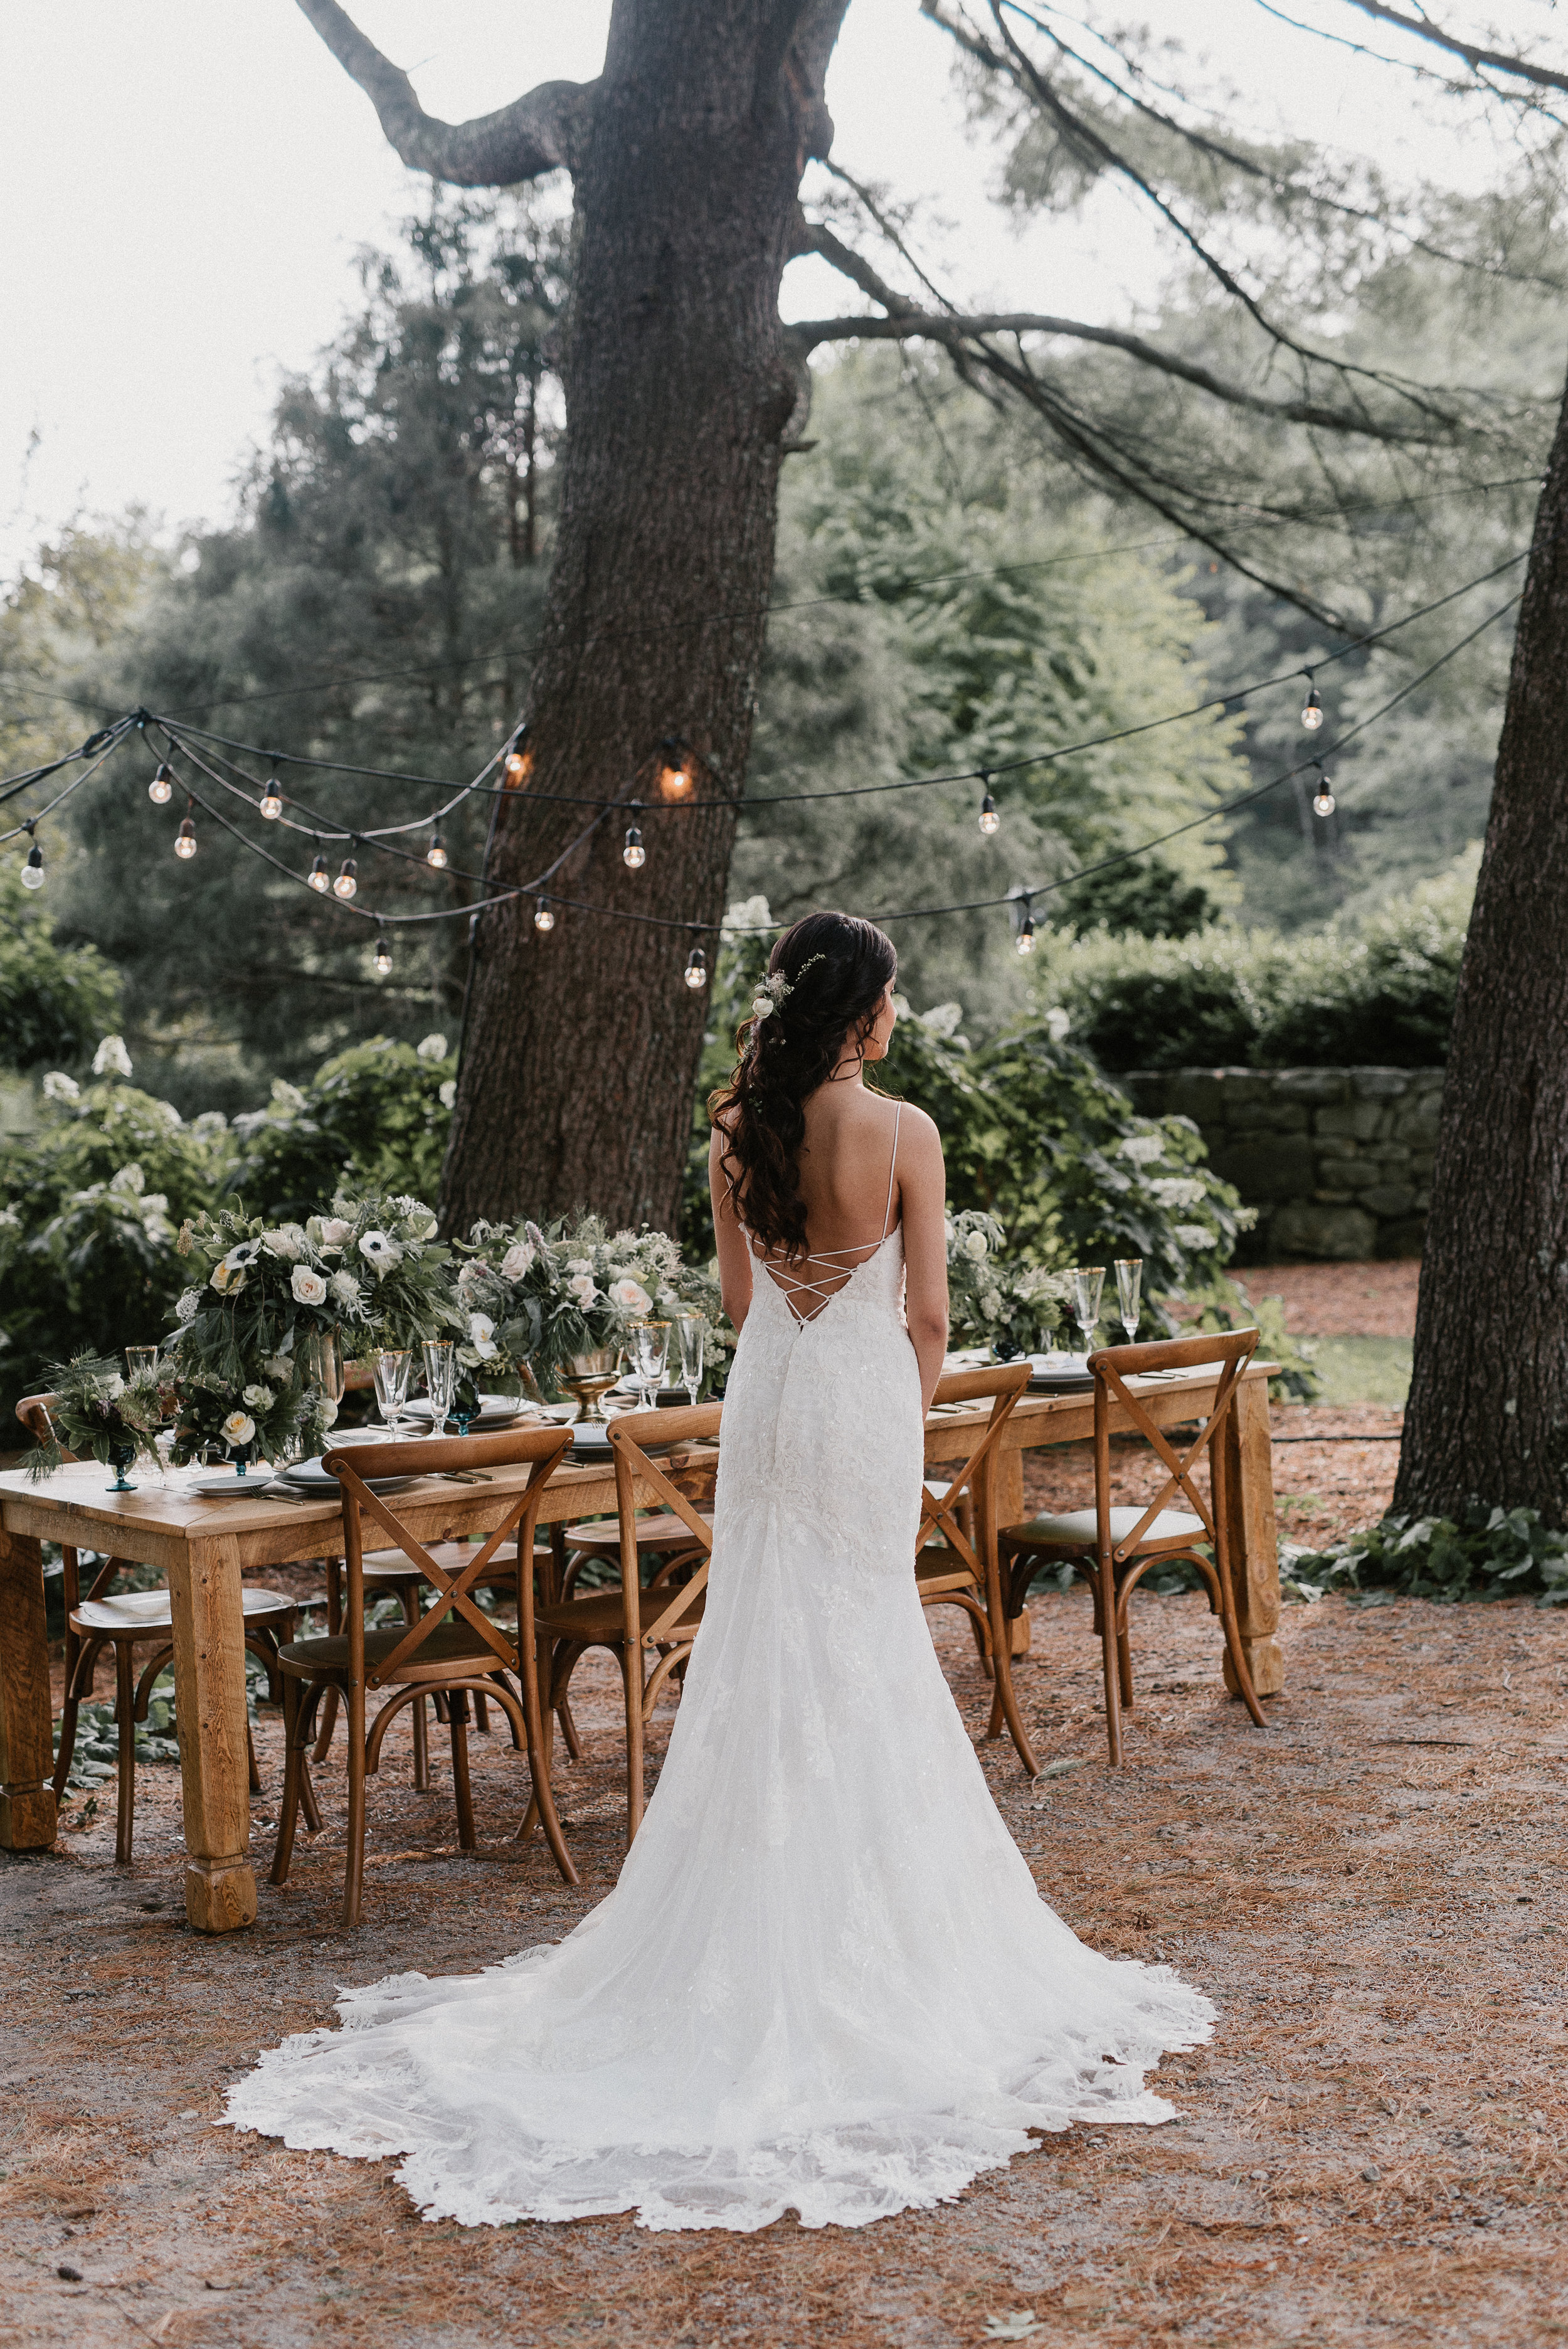 The Pine Grove - A stunning woodland setting for outdoor wedding ceremonies.